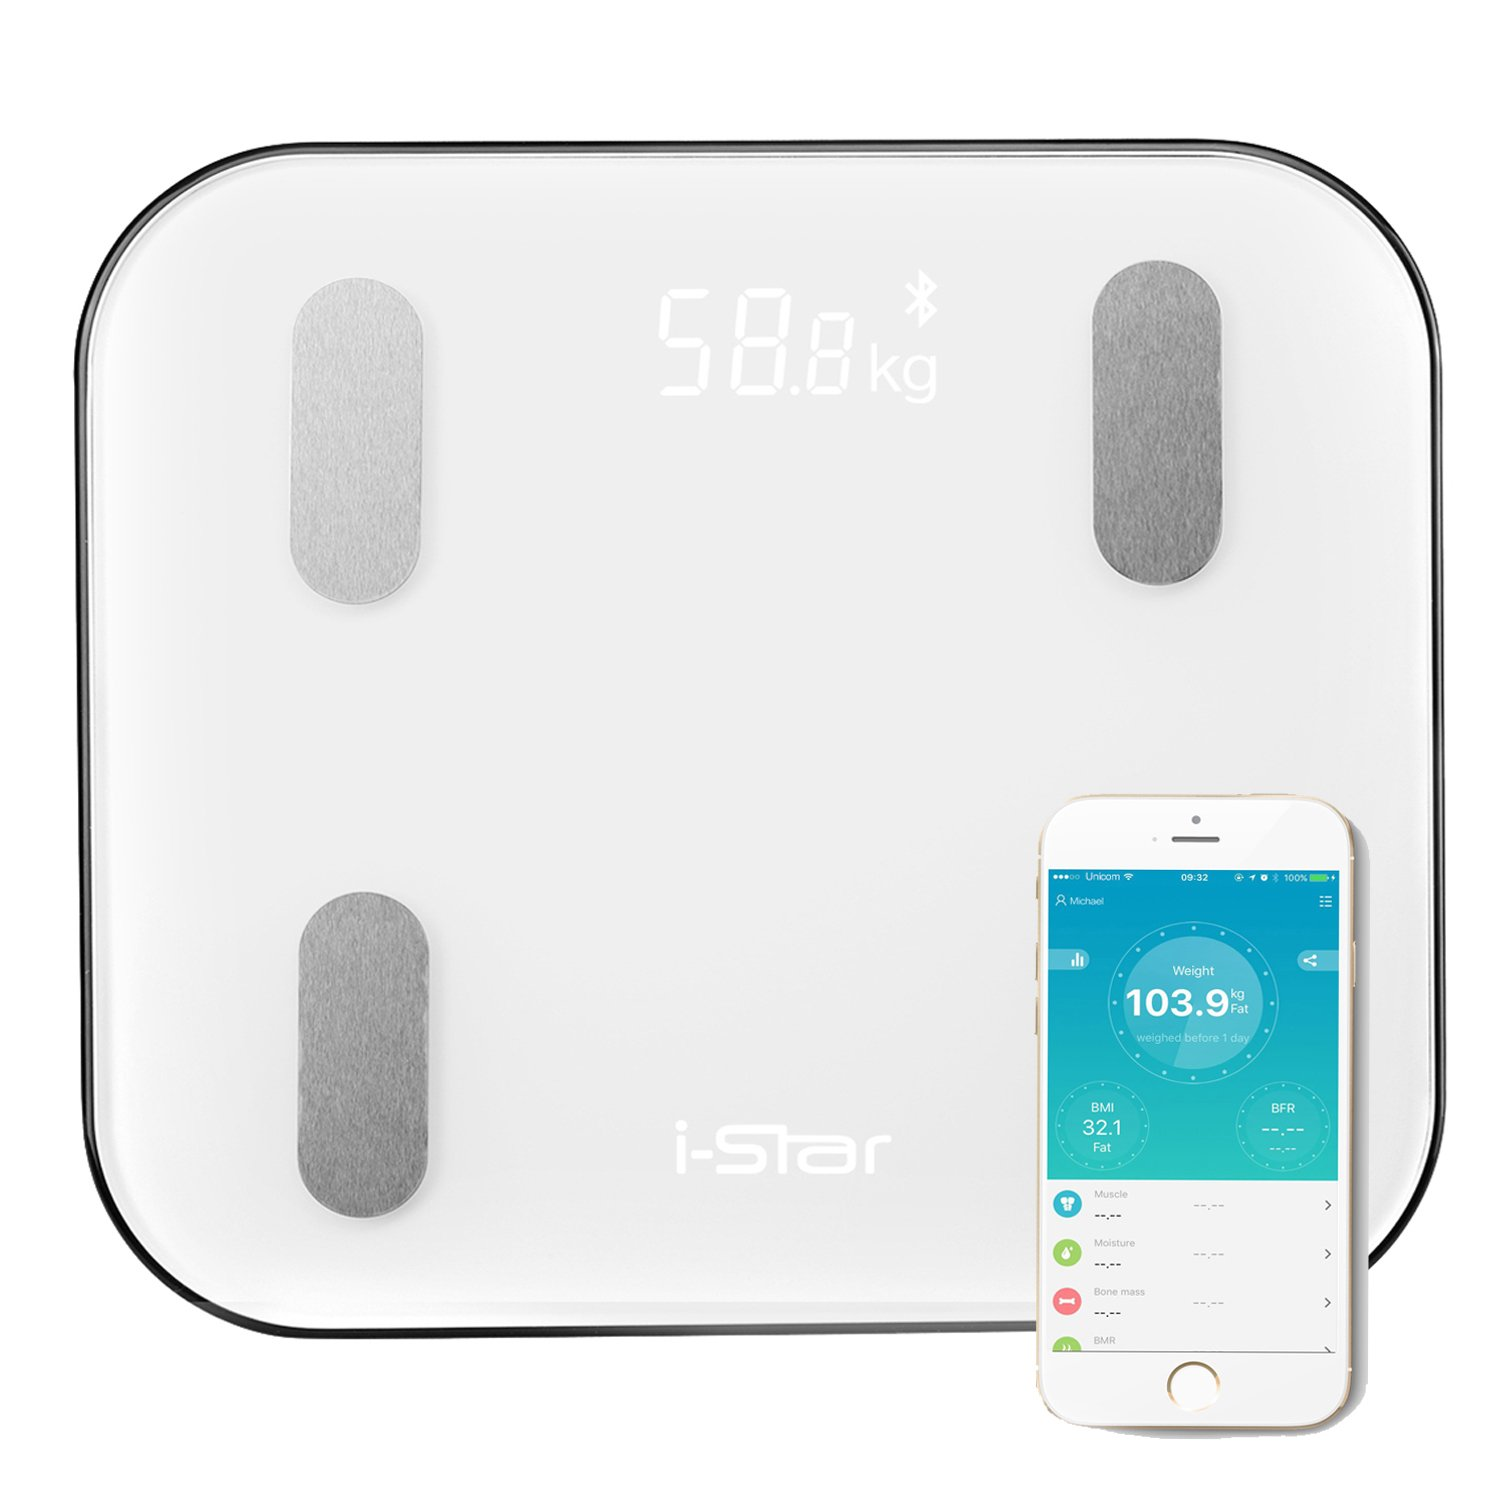 Bluetooth Body Fat Scale,i-Star Wireless Digital Smart Full Body Weight Composition Analyzer, Health Monitor with iOS and Android,Bathroom Use with Large Backlit Display,White …